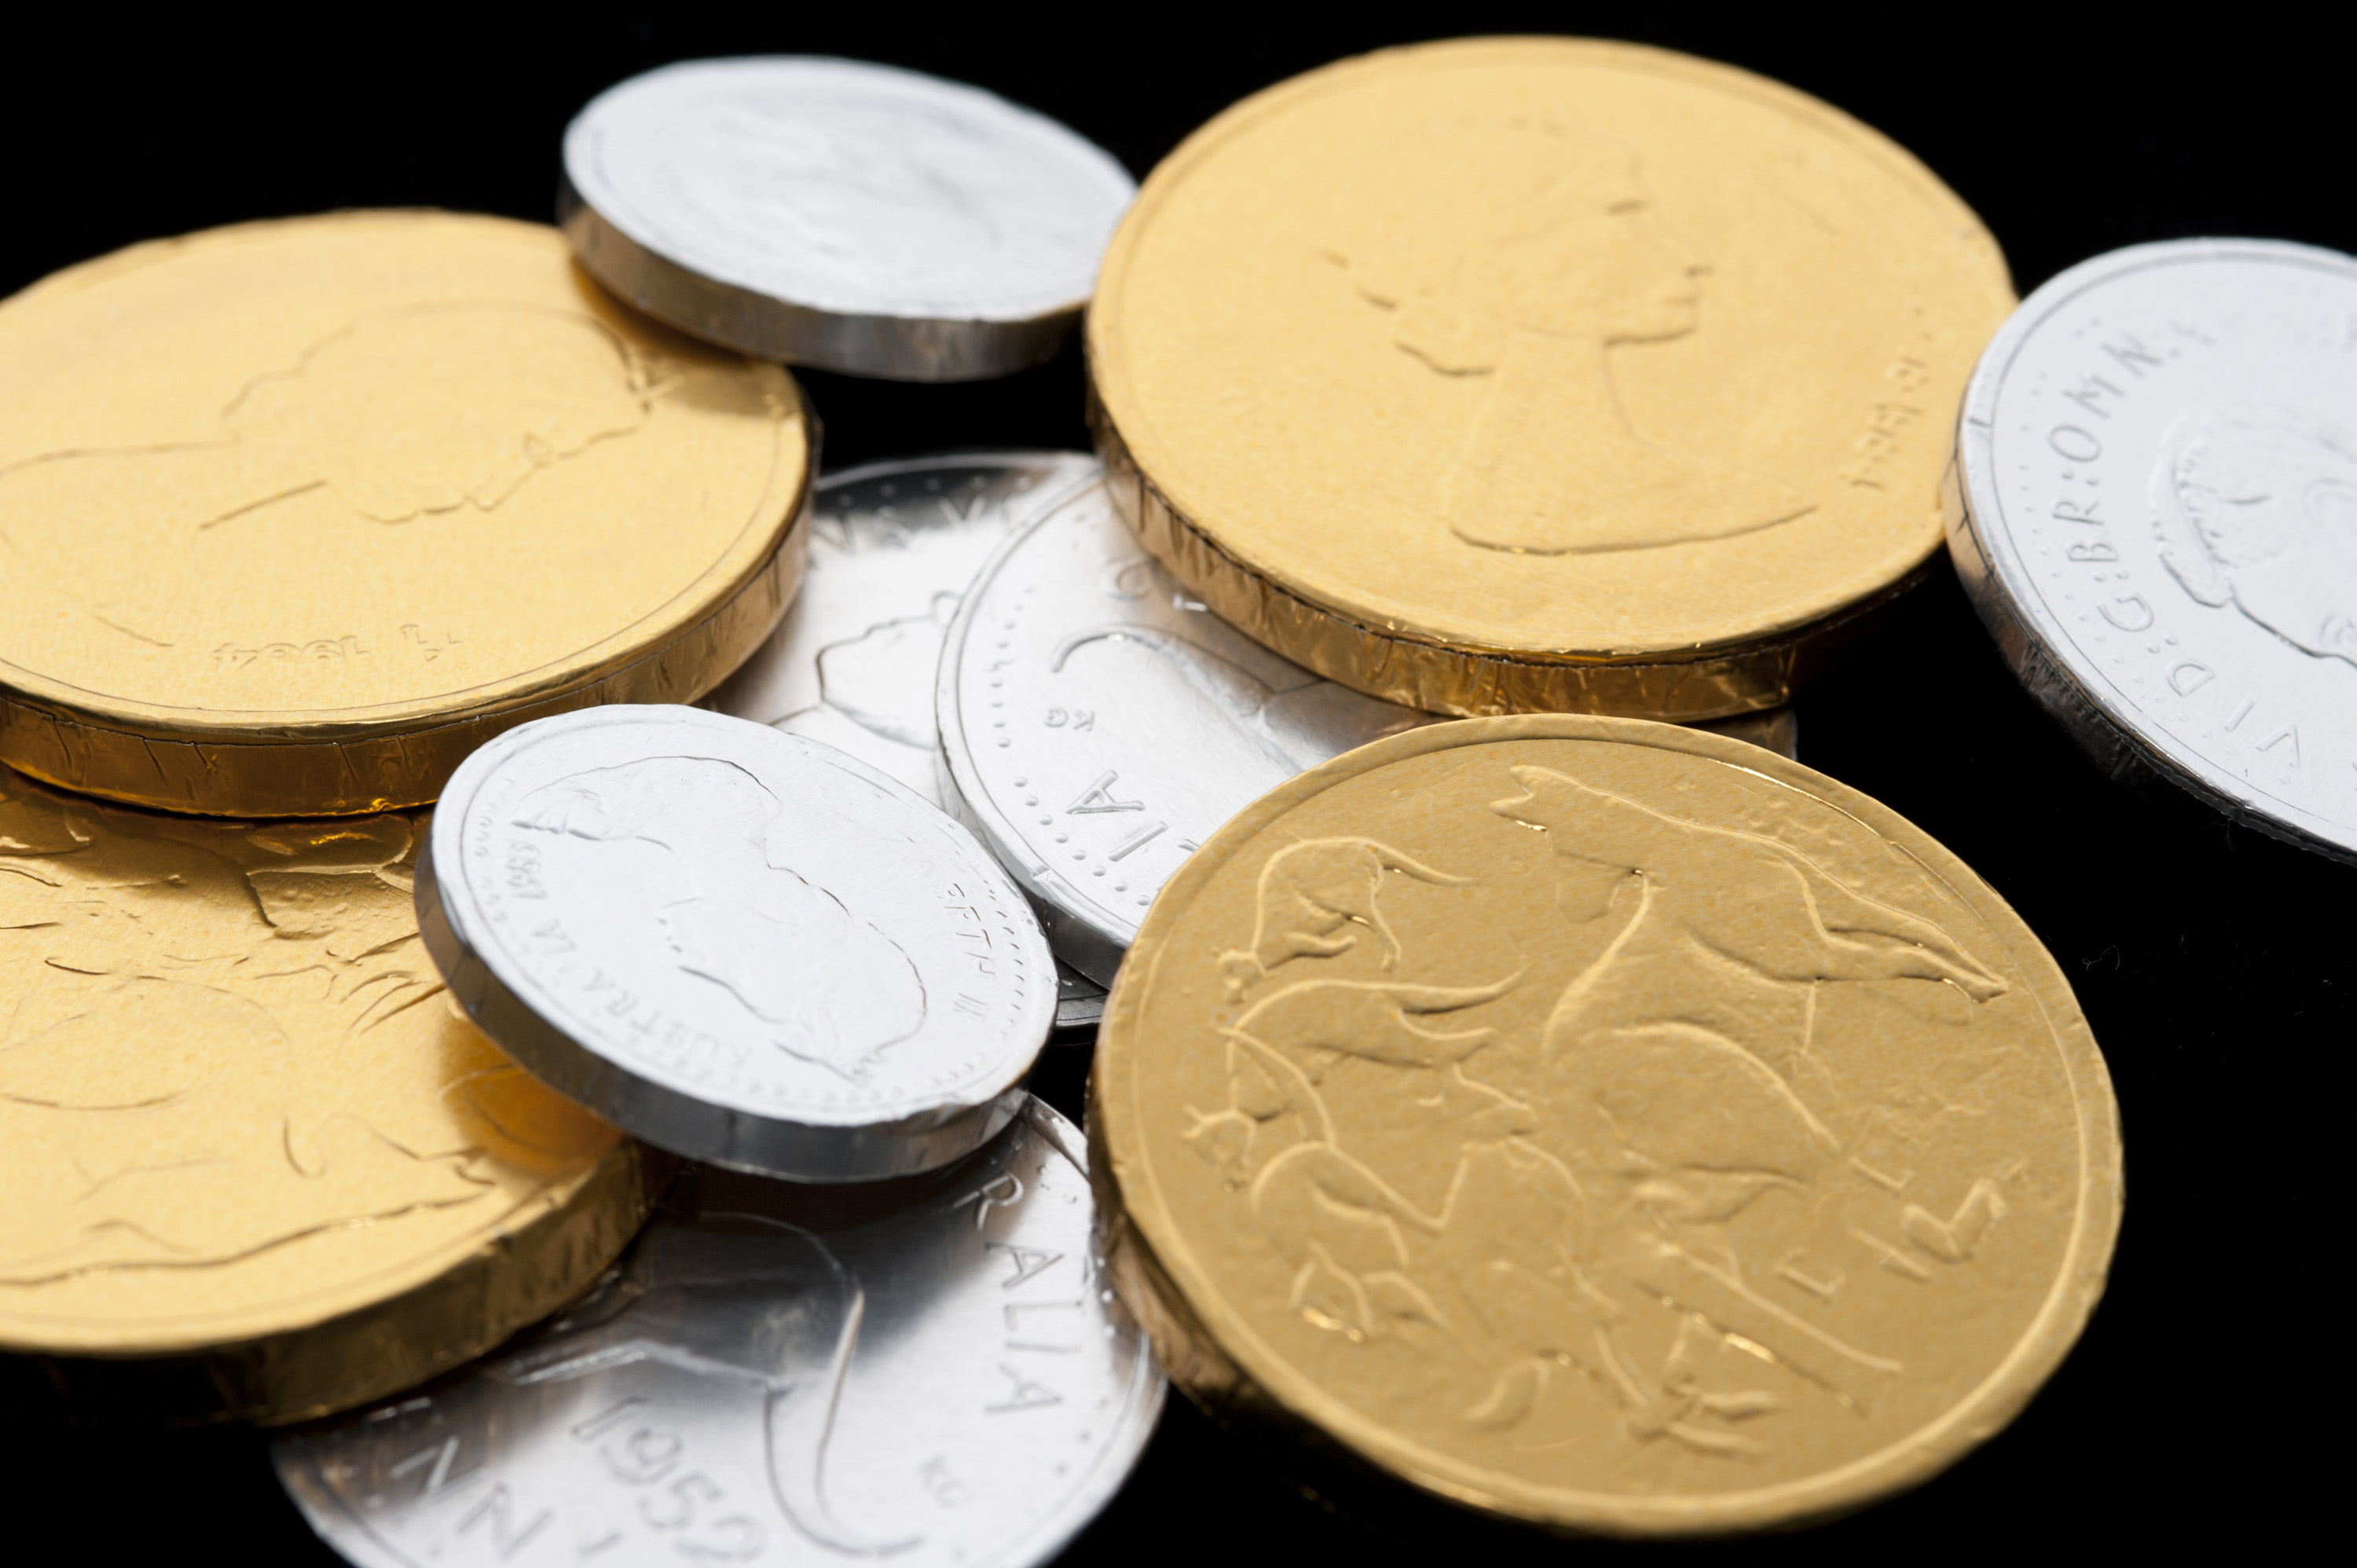 Festive gold and silver foil wrapped chocolate candy coins for a party celebration or for use in a display to represent wealth and riches